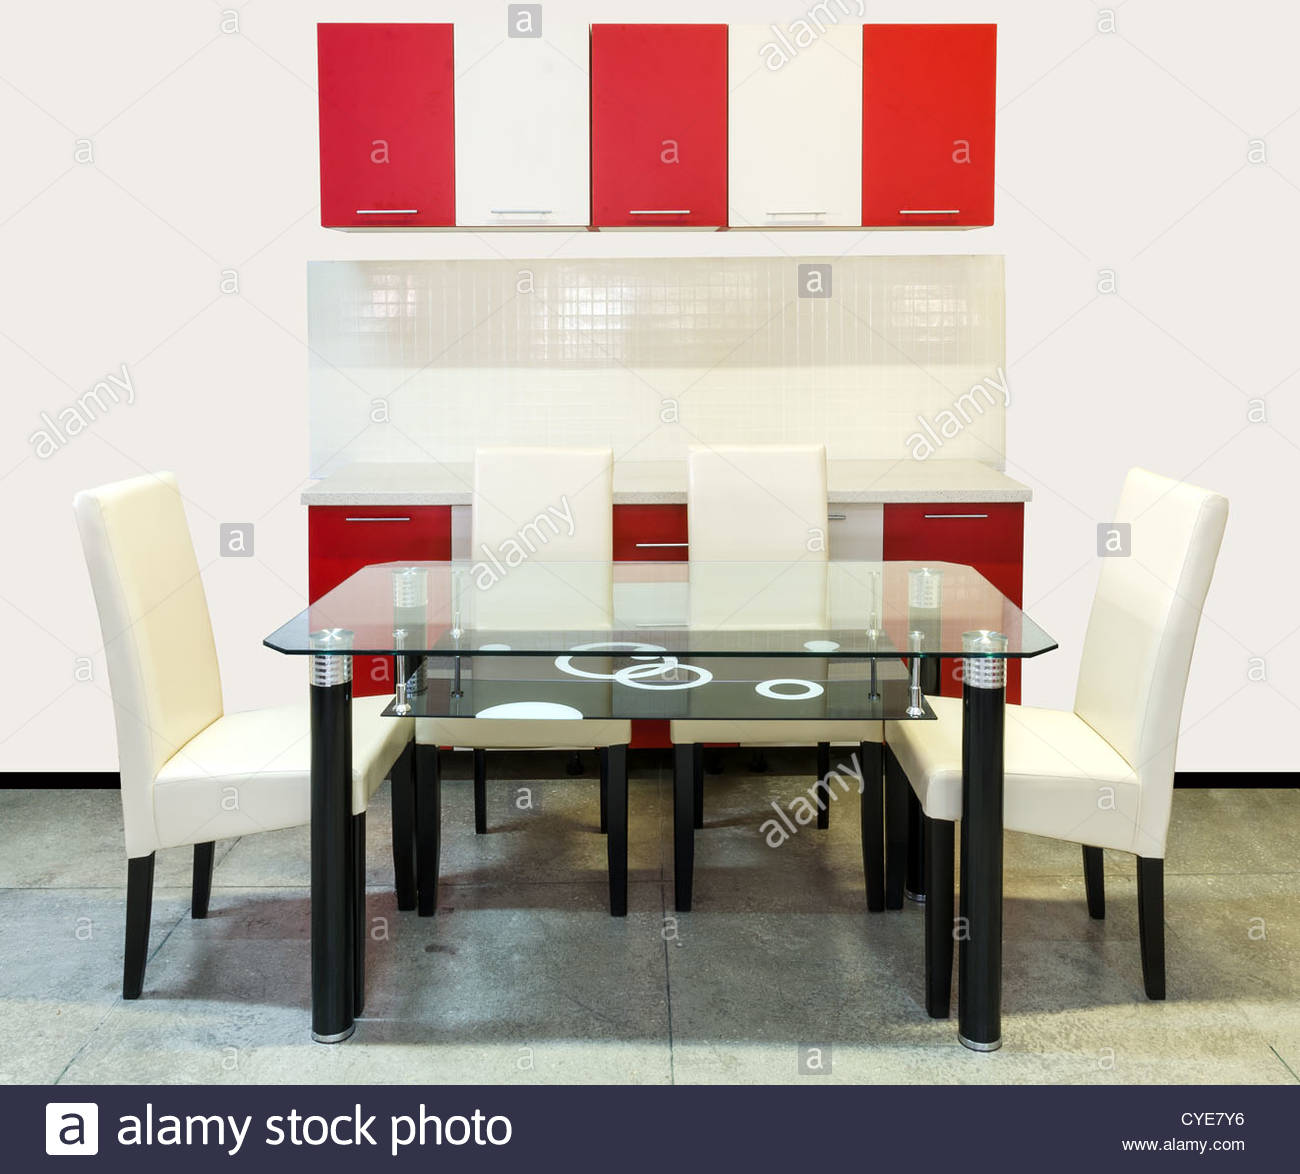 Modern kitchen furniture with wooden cupboards, glass table and tapestry chairs - Stock Image